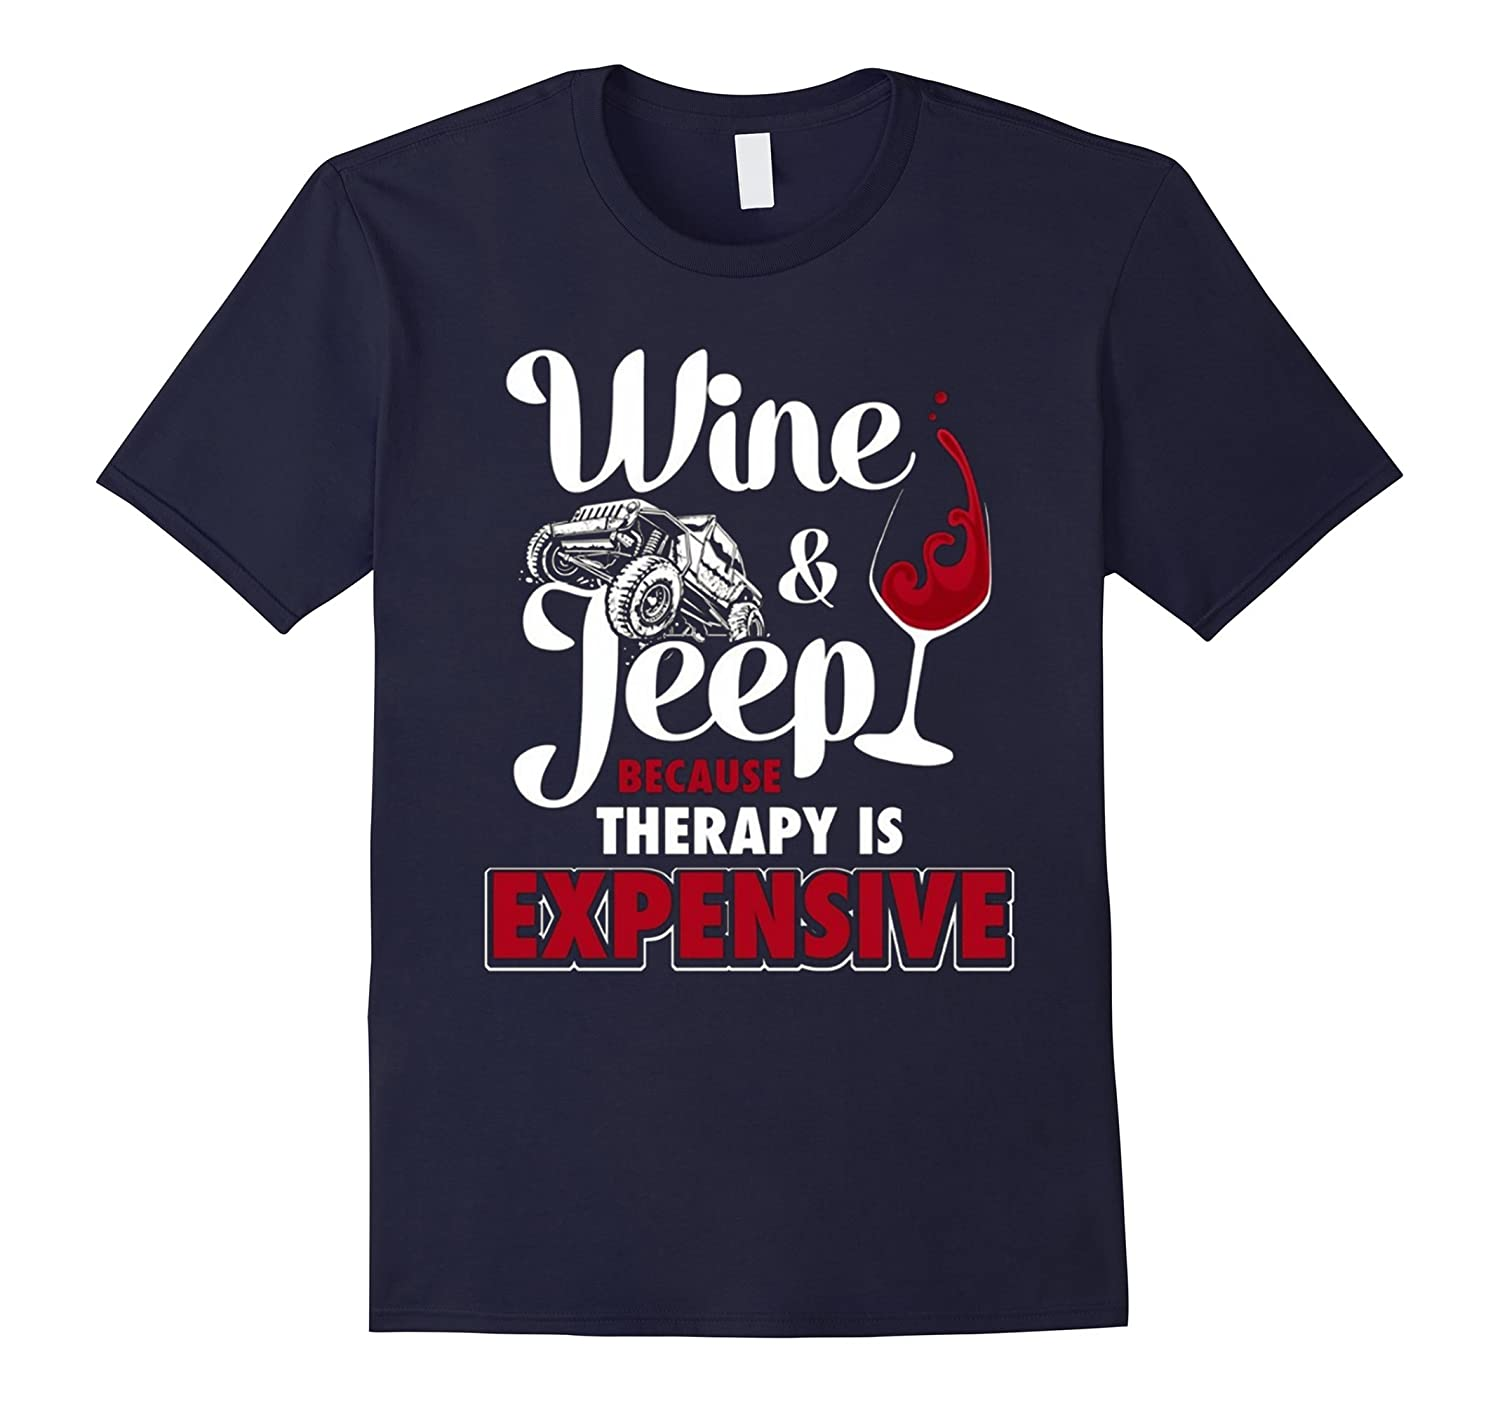 a974d603 Mens Proud Papi Awesome Son Father Day Gift T-shirt Best Sale-RT. Wine Jeep  - Because Therapy is Expensive Shirt 2016-RT